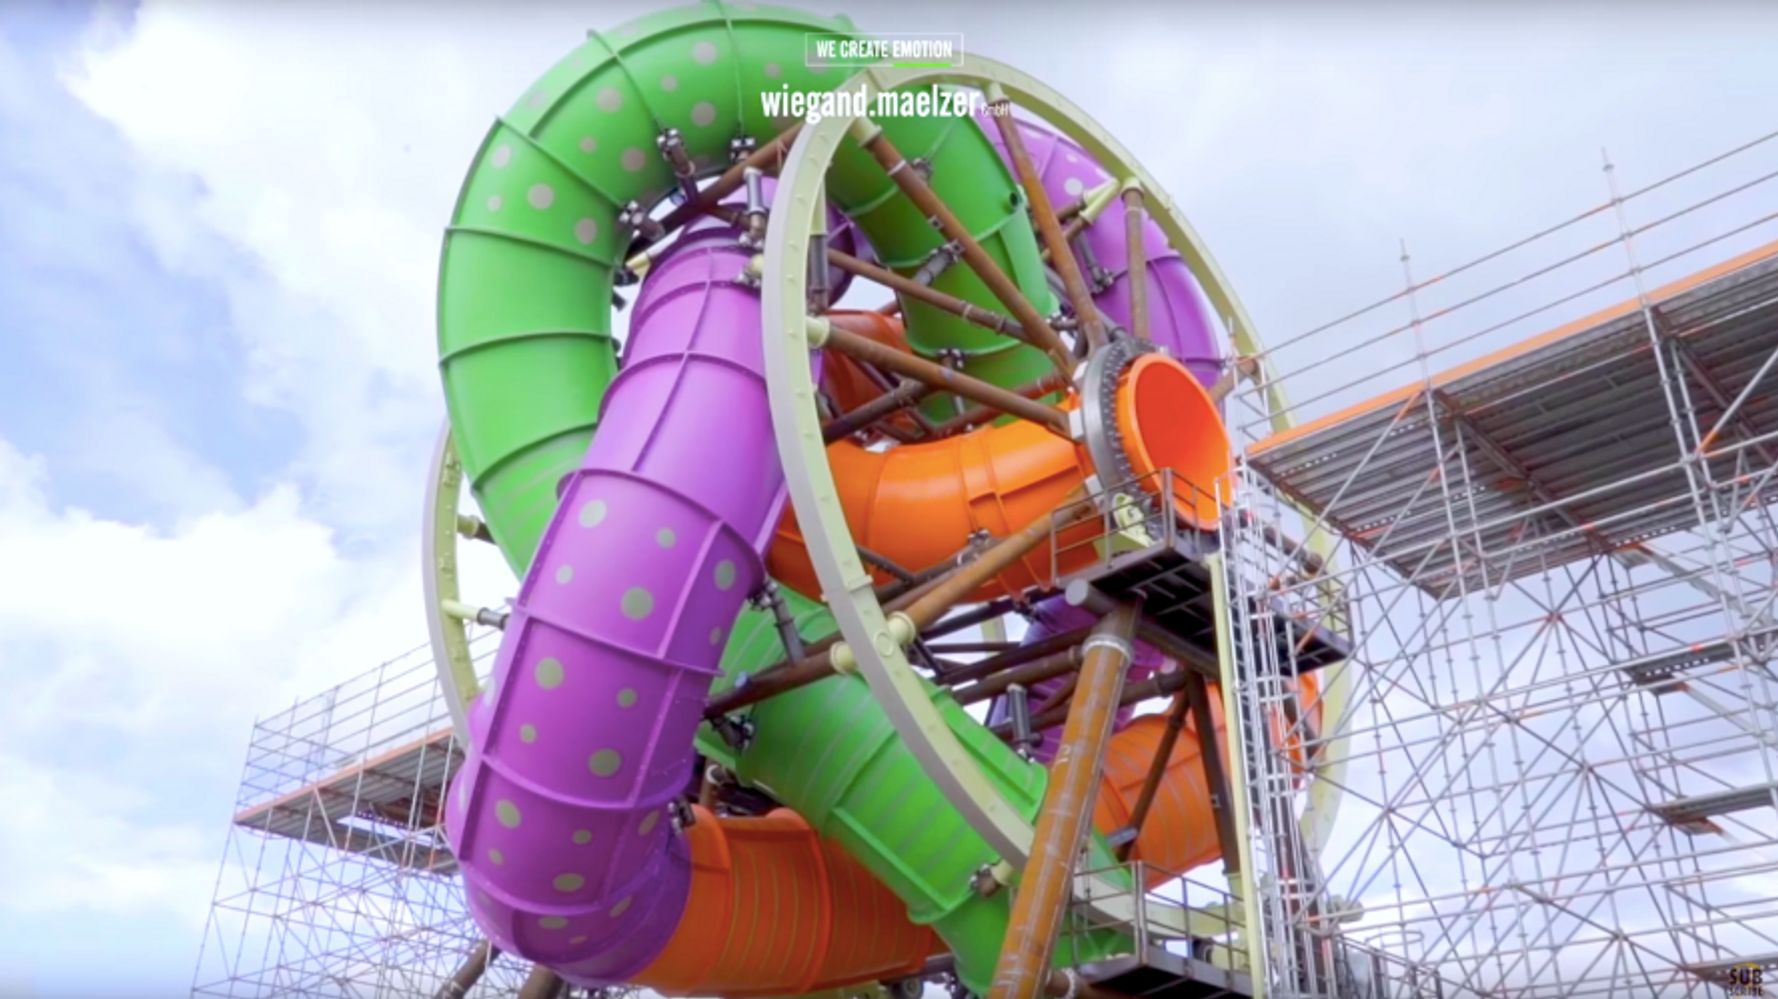 This Twisted, Spinning Waterslide Is Not For The Faint Of Heart